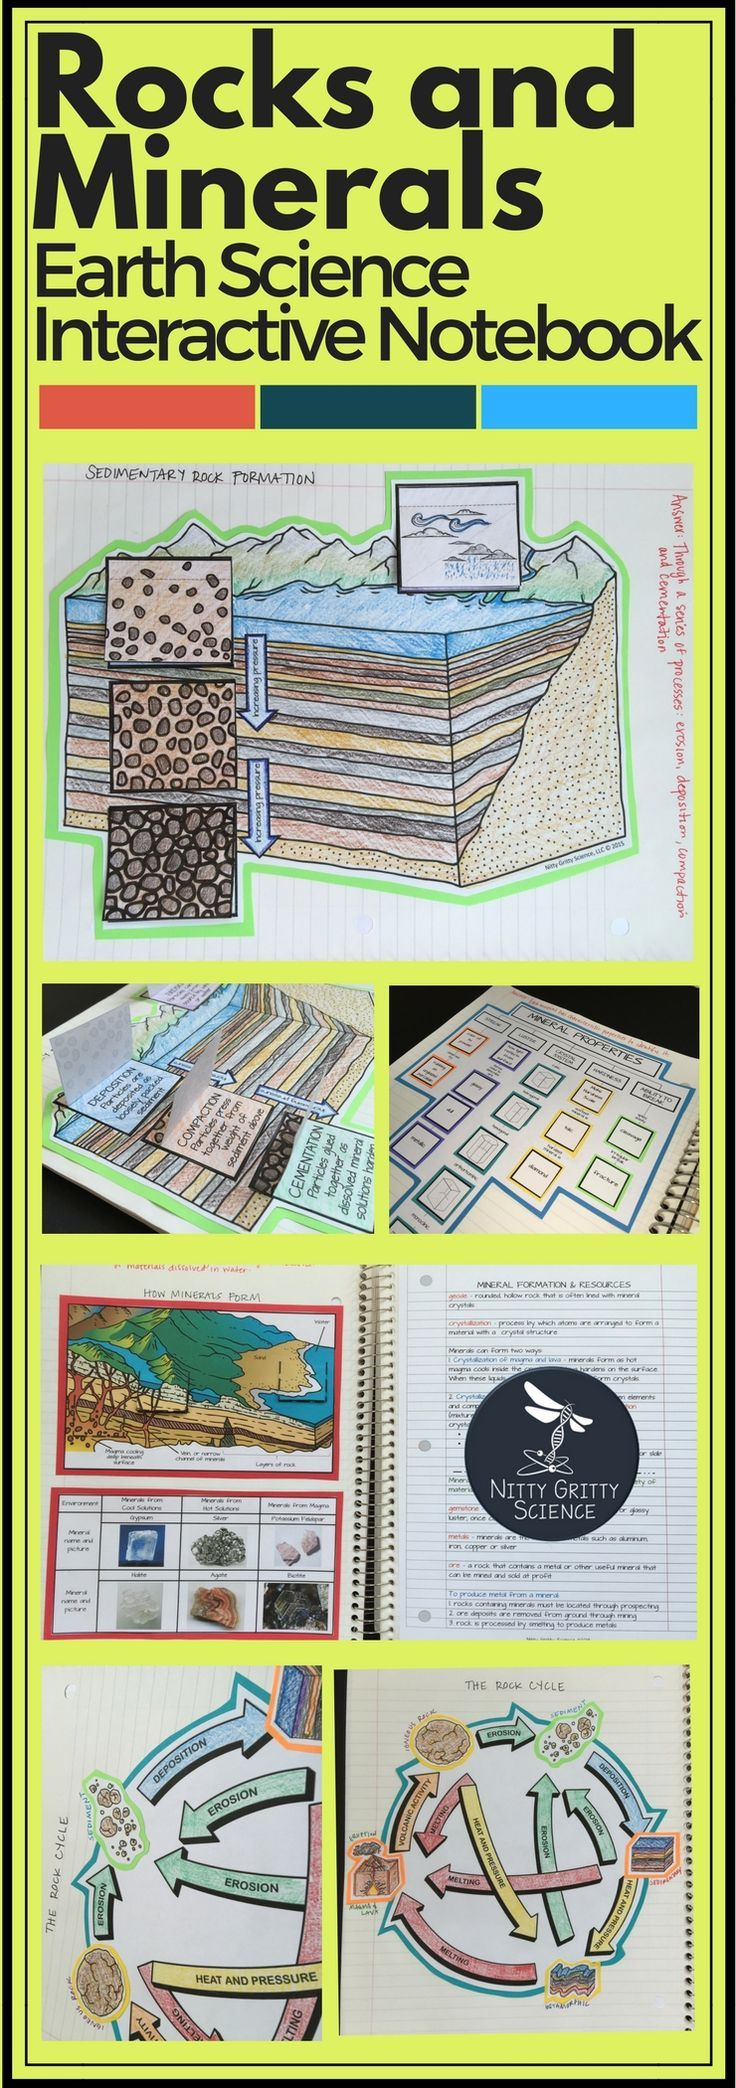 The Earth Science Interactive Notebook: Rocks and Minerals chapter showcase student's ability to: •Explain how minerals are identified •Explain how minerals form from magma and solutions •Identify and describe the three major groups of rocks •Describe the rock cycle •Describe how sedimentary rocks are formed